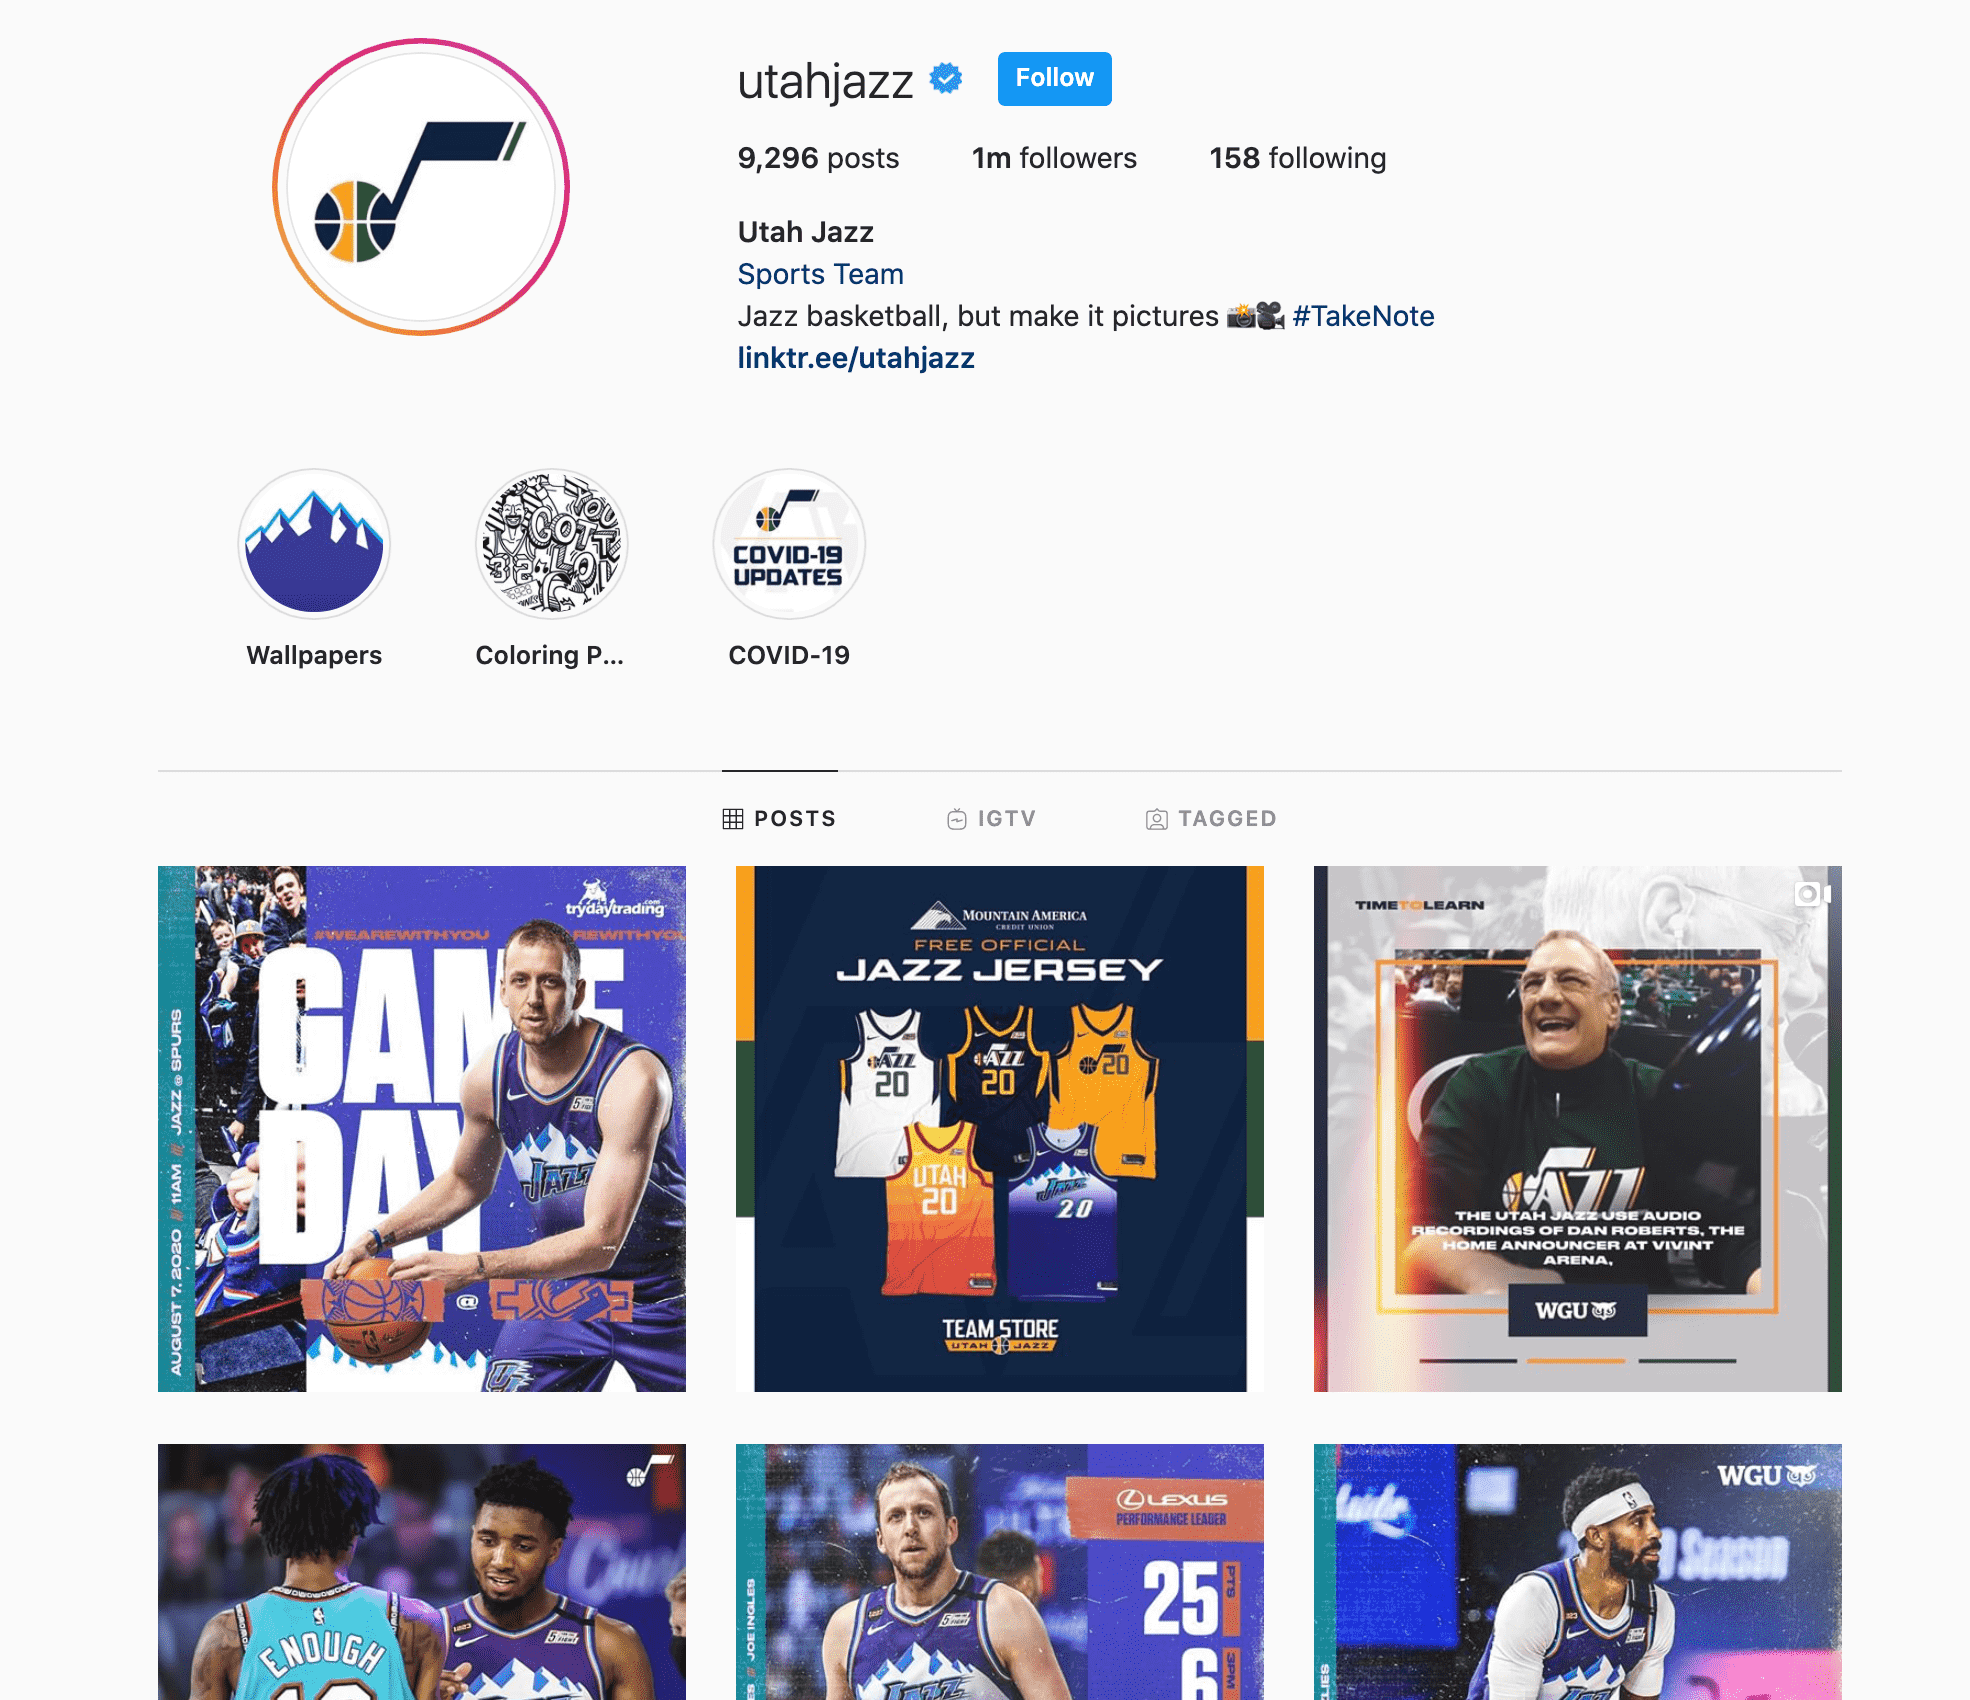 utah jazz instagram